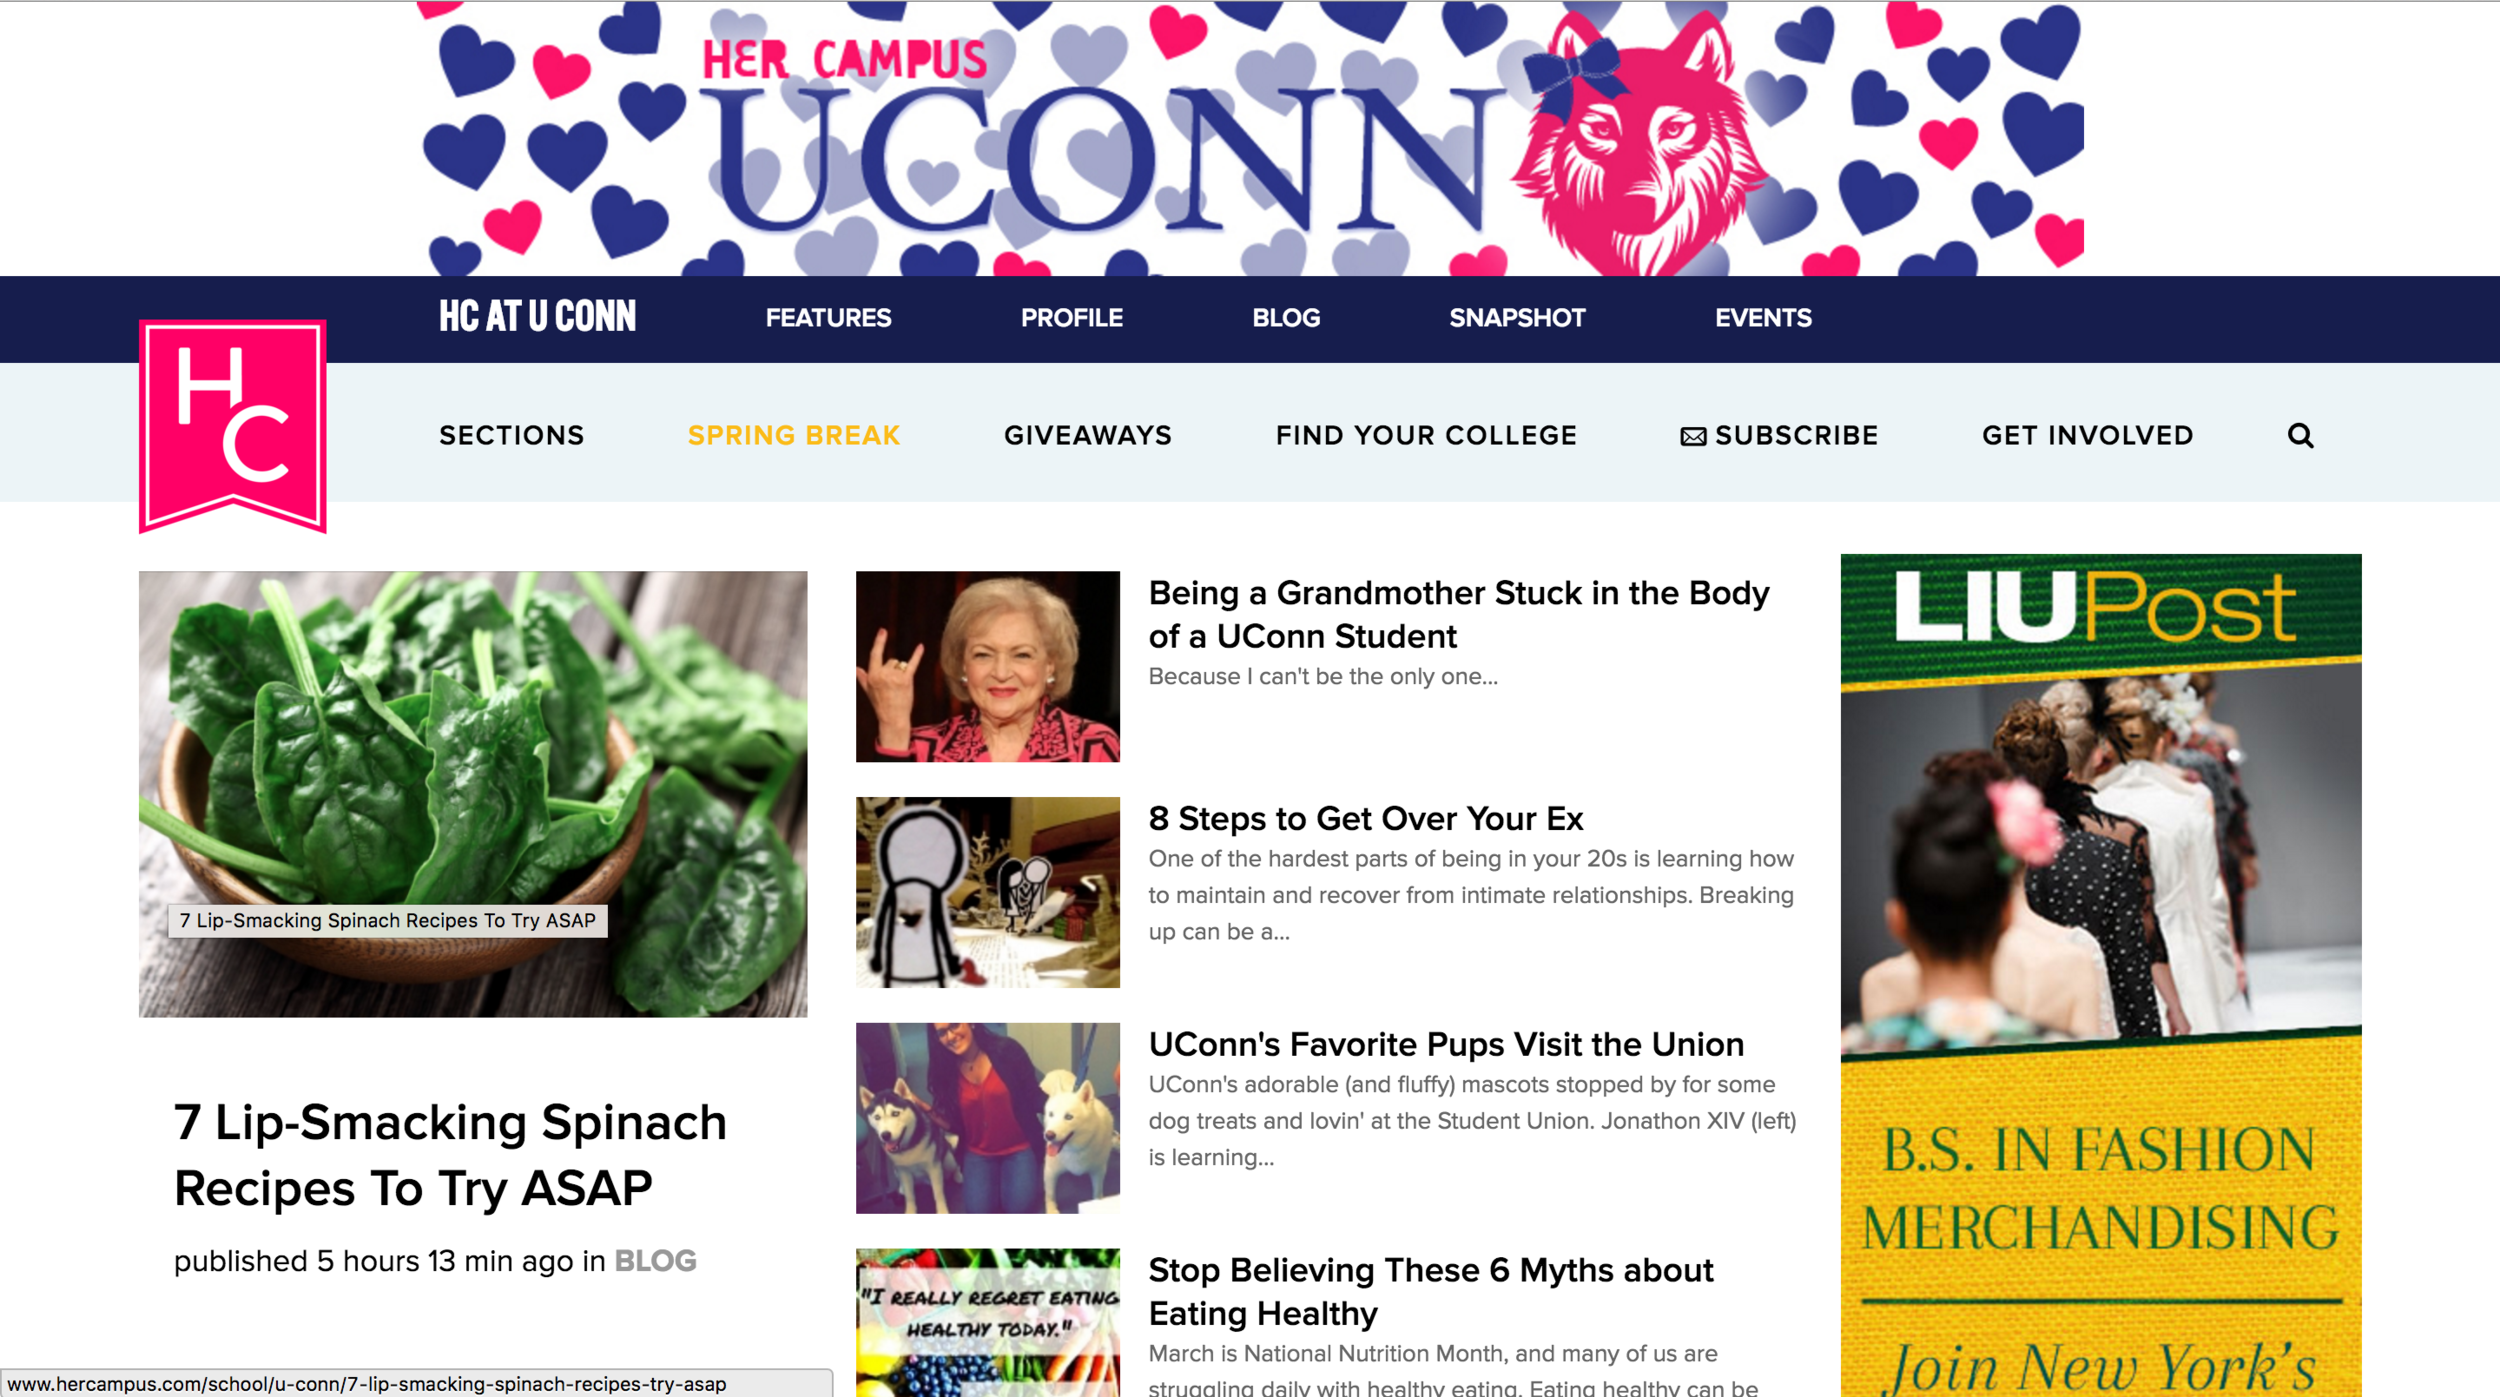 Her Campus UConn provides magazine writing, event coverage